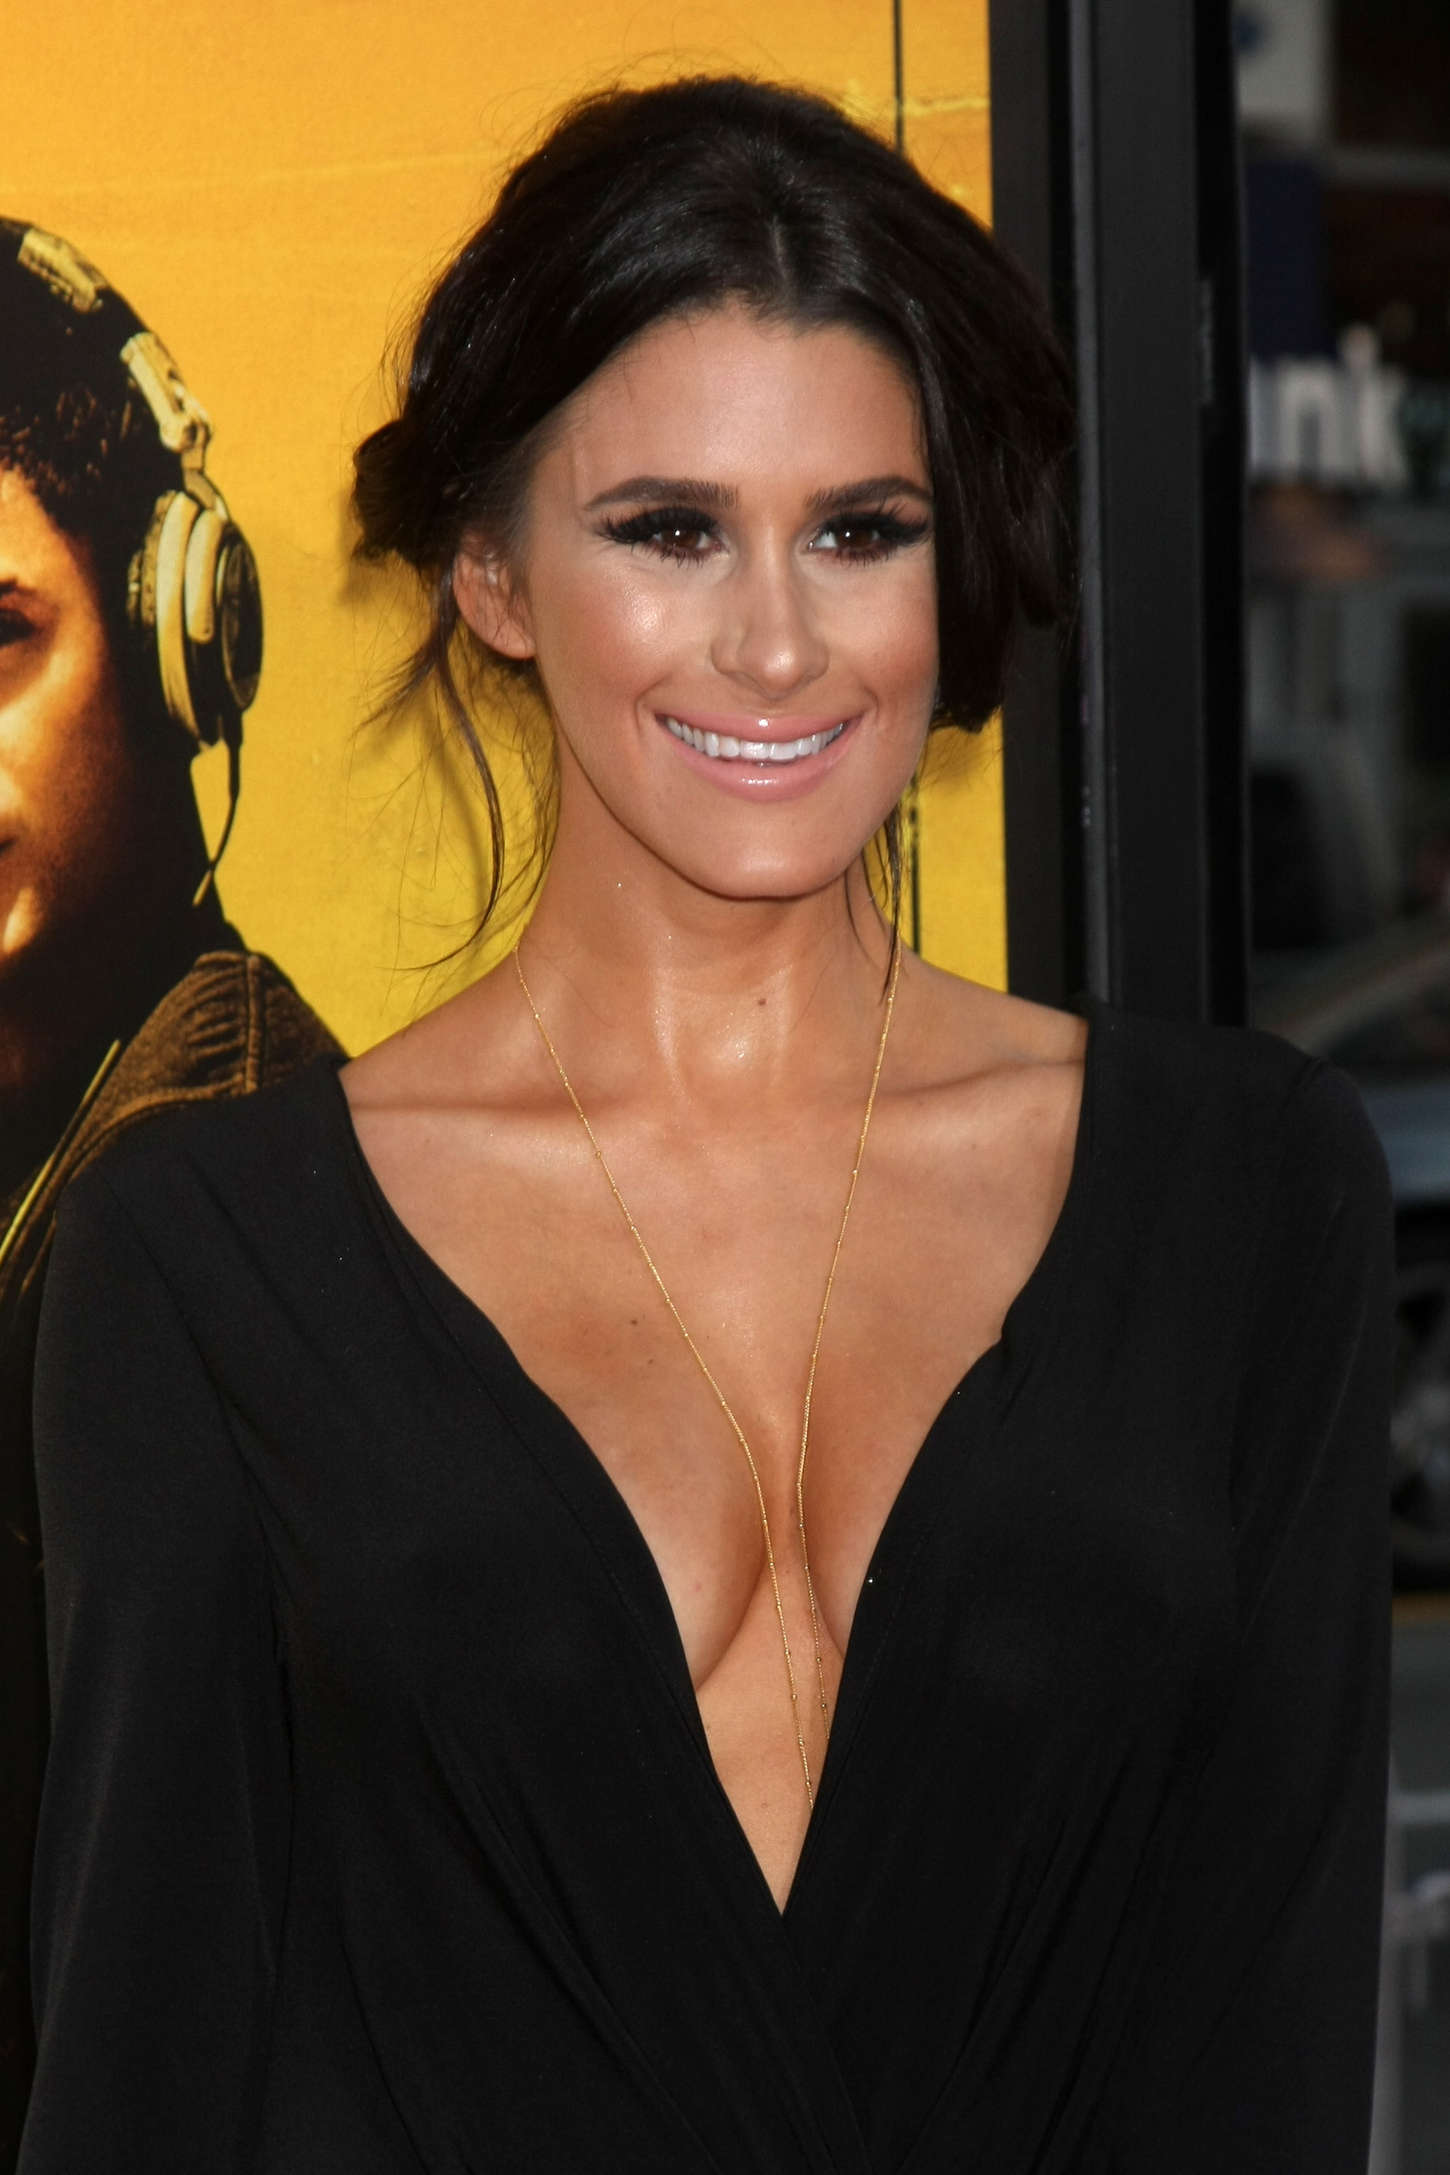 Brittany Furlan - 'We Are Your Friends' Premiere in LA